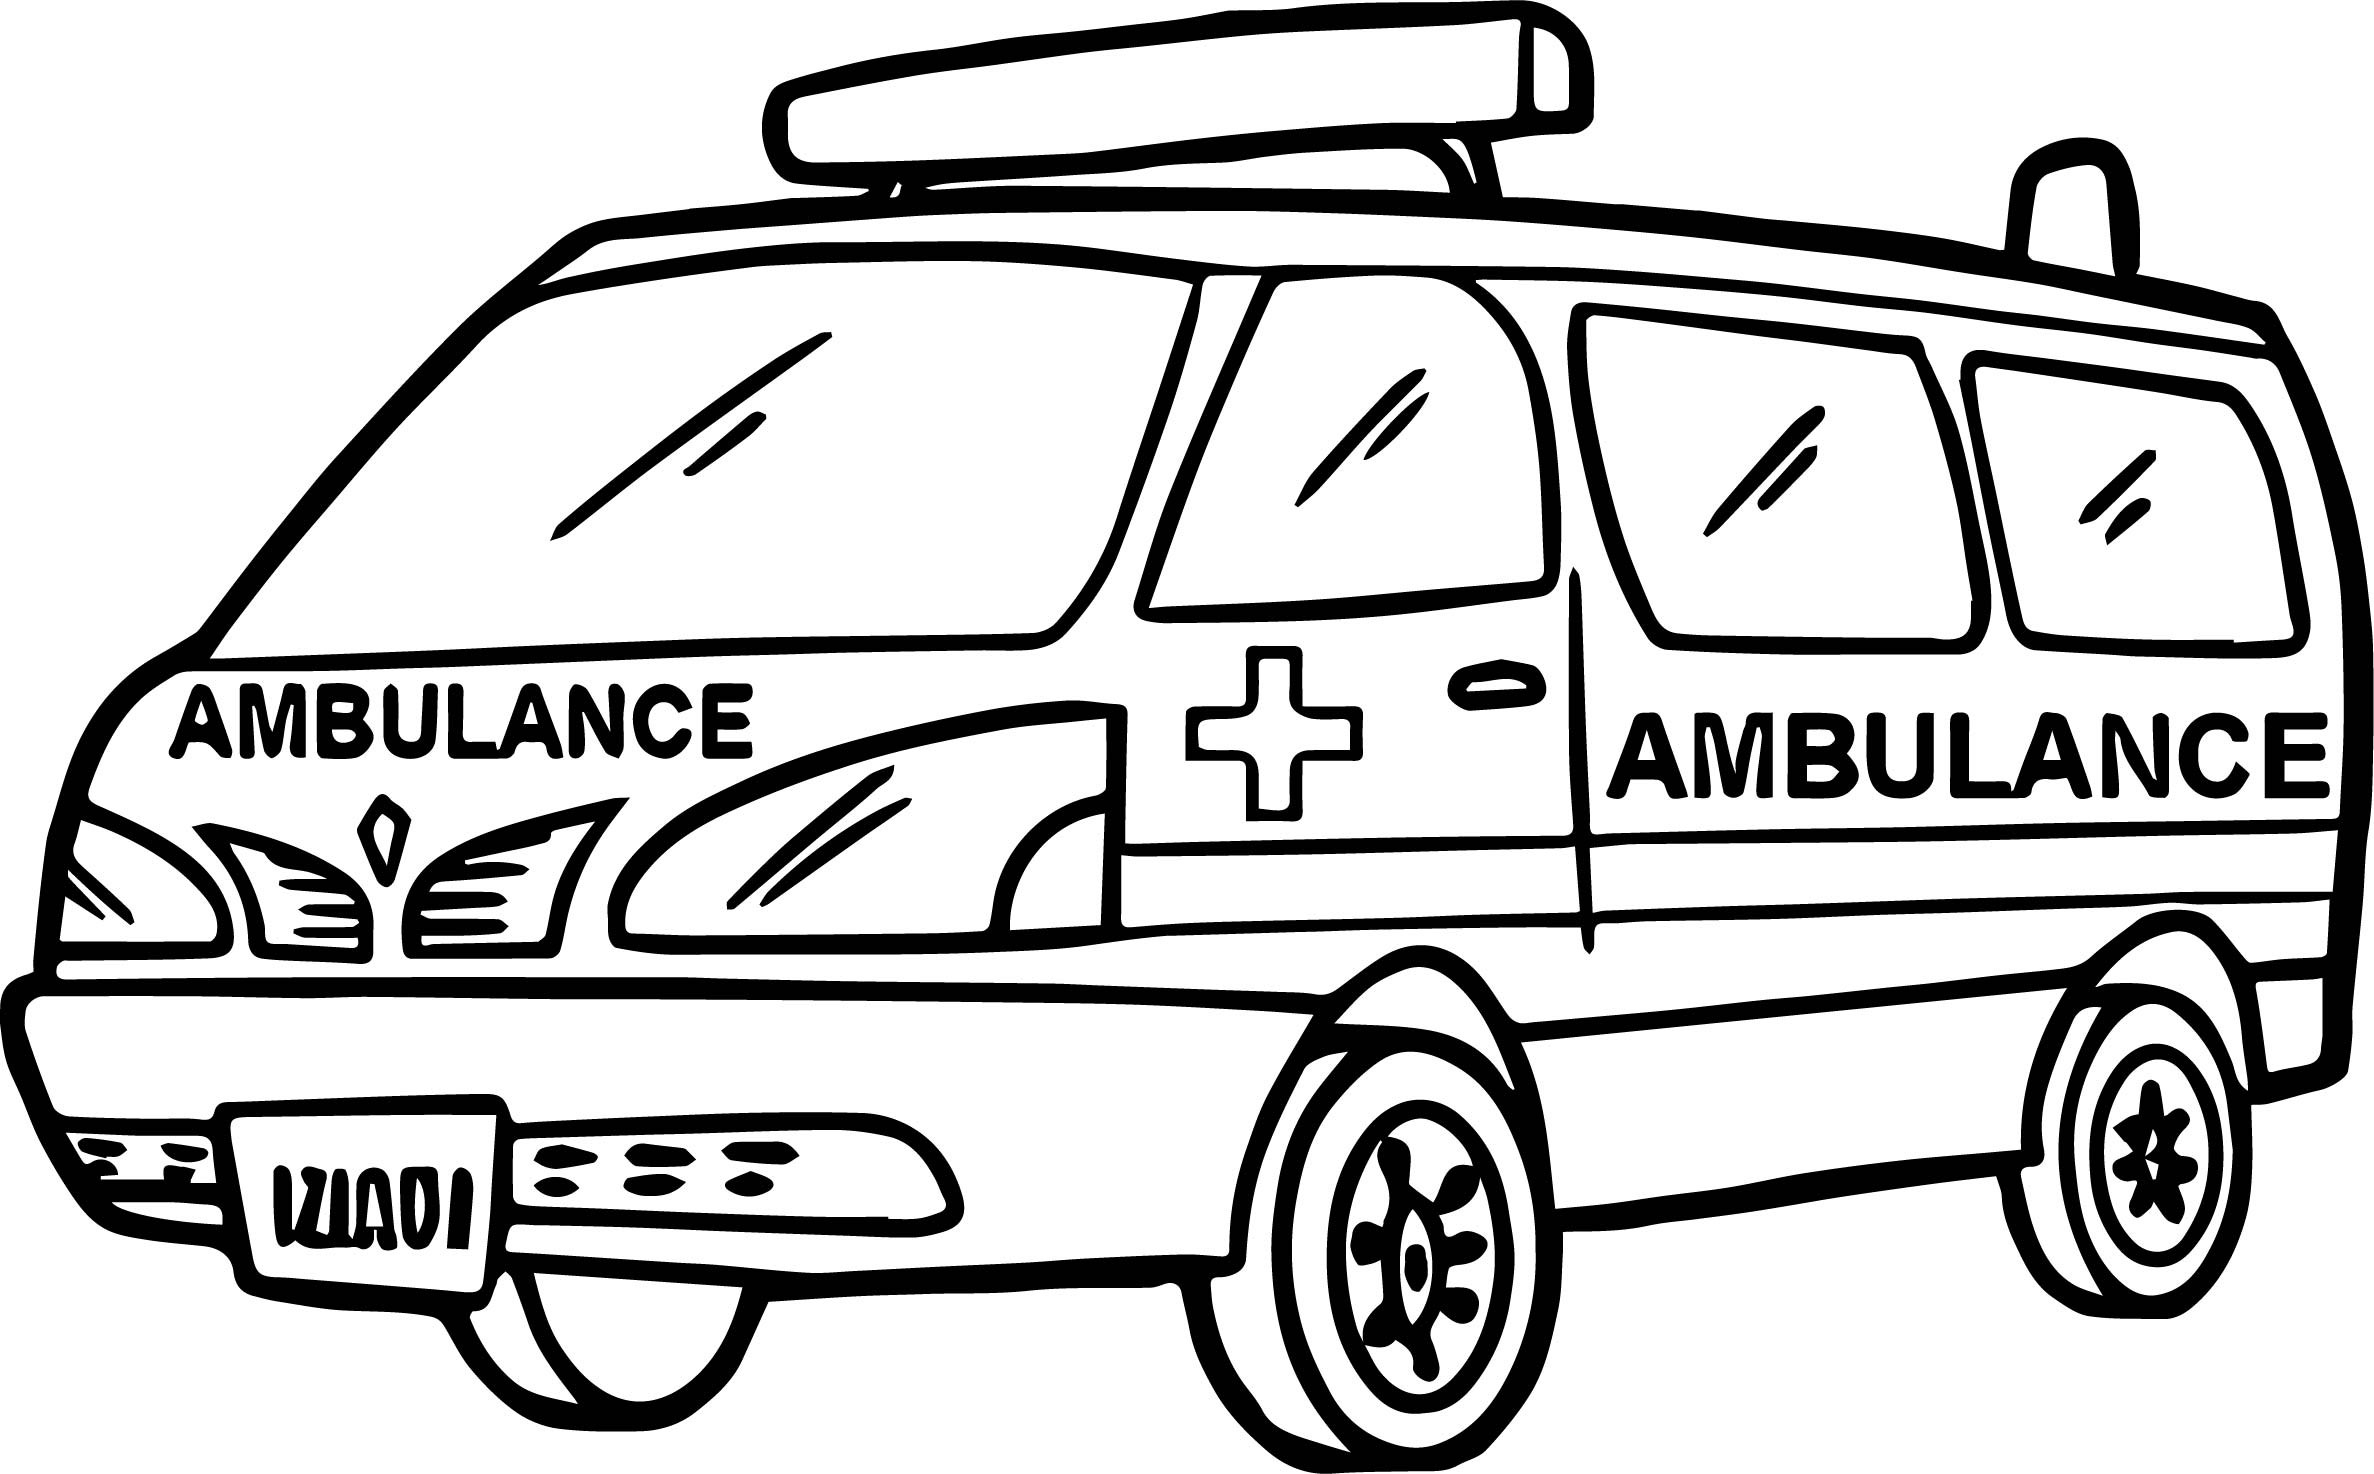 Coloring pages of car collection free coloring sheets for Ambulance coloring page